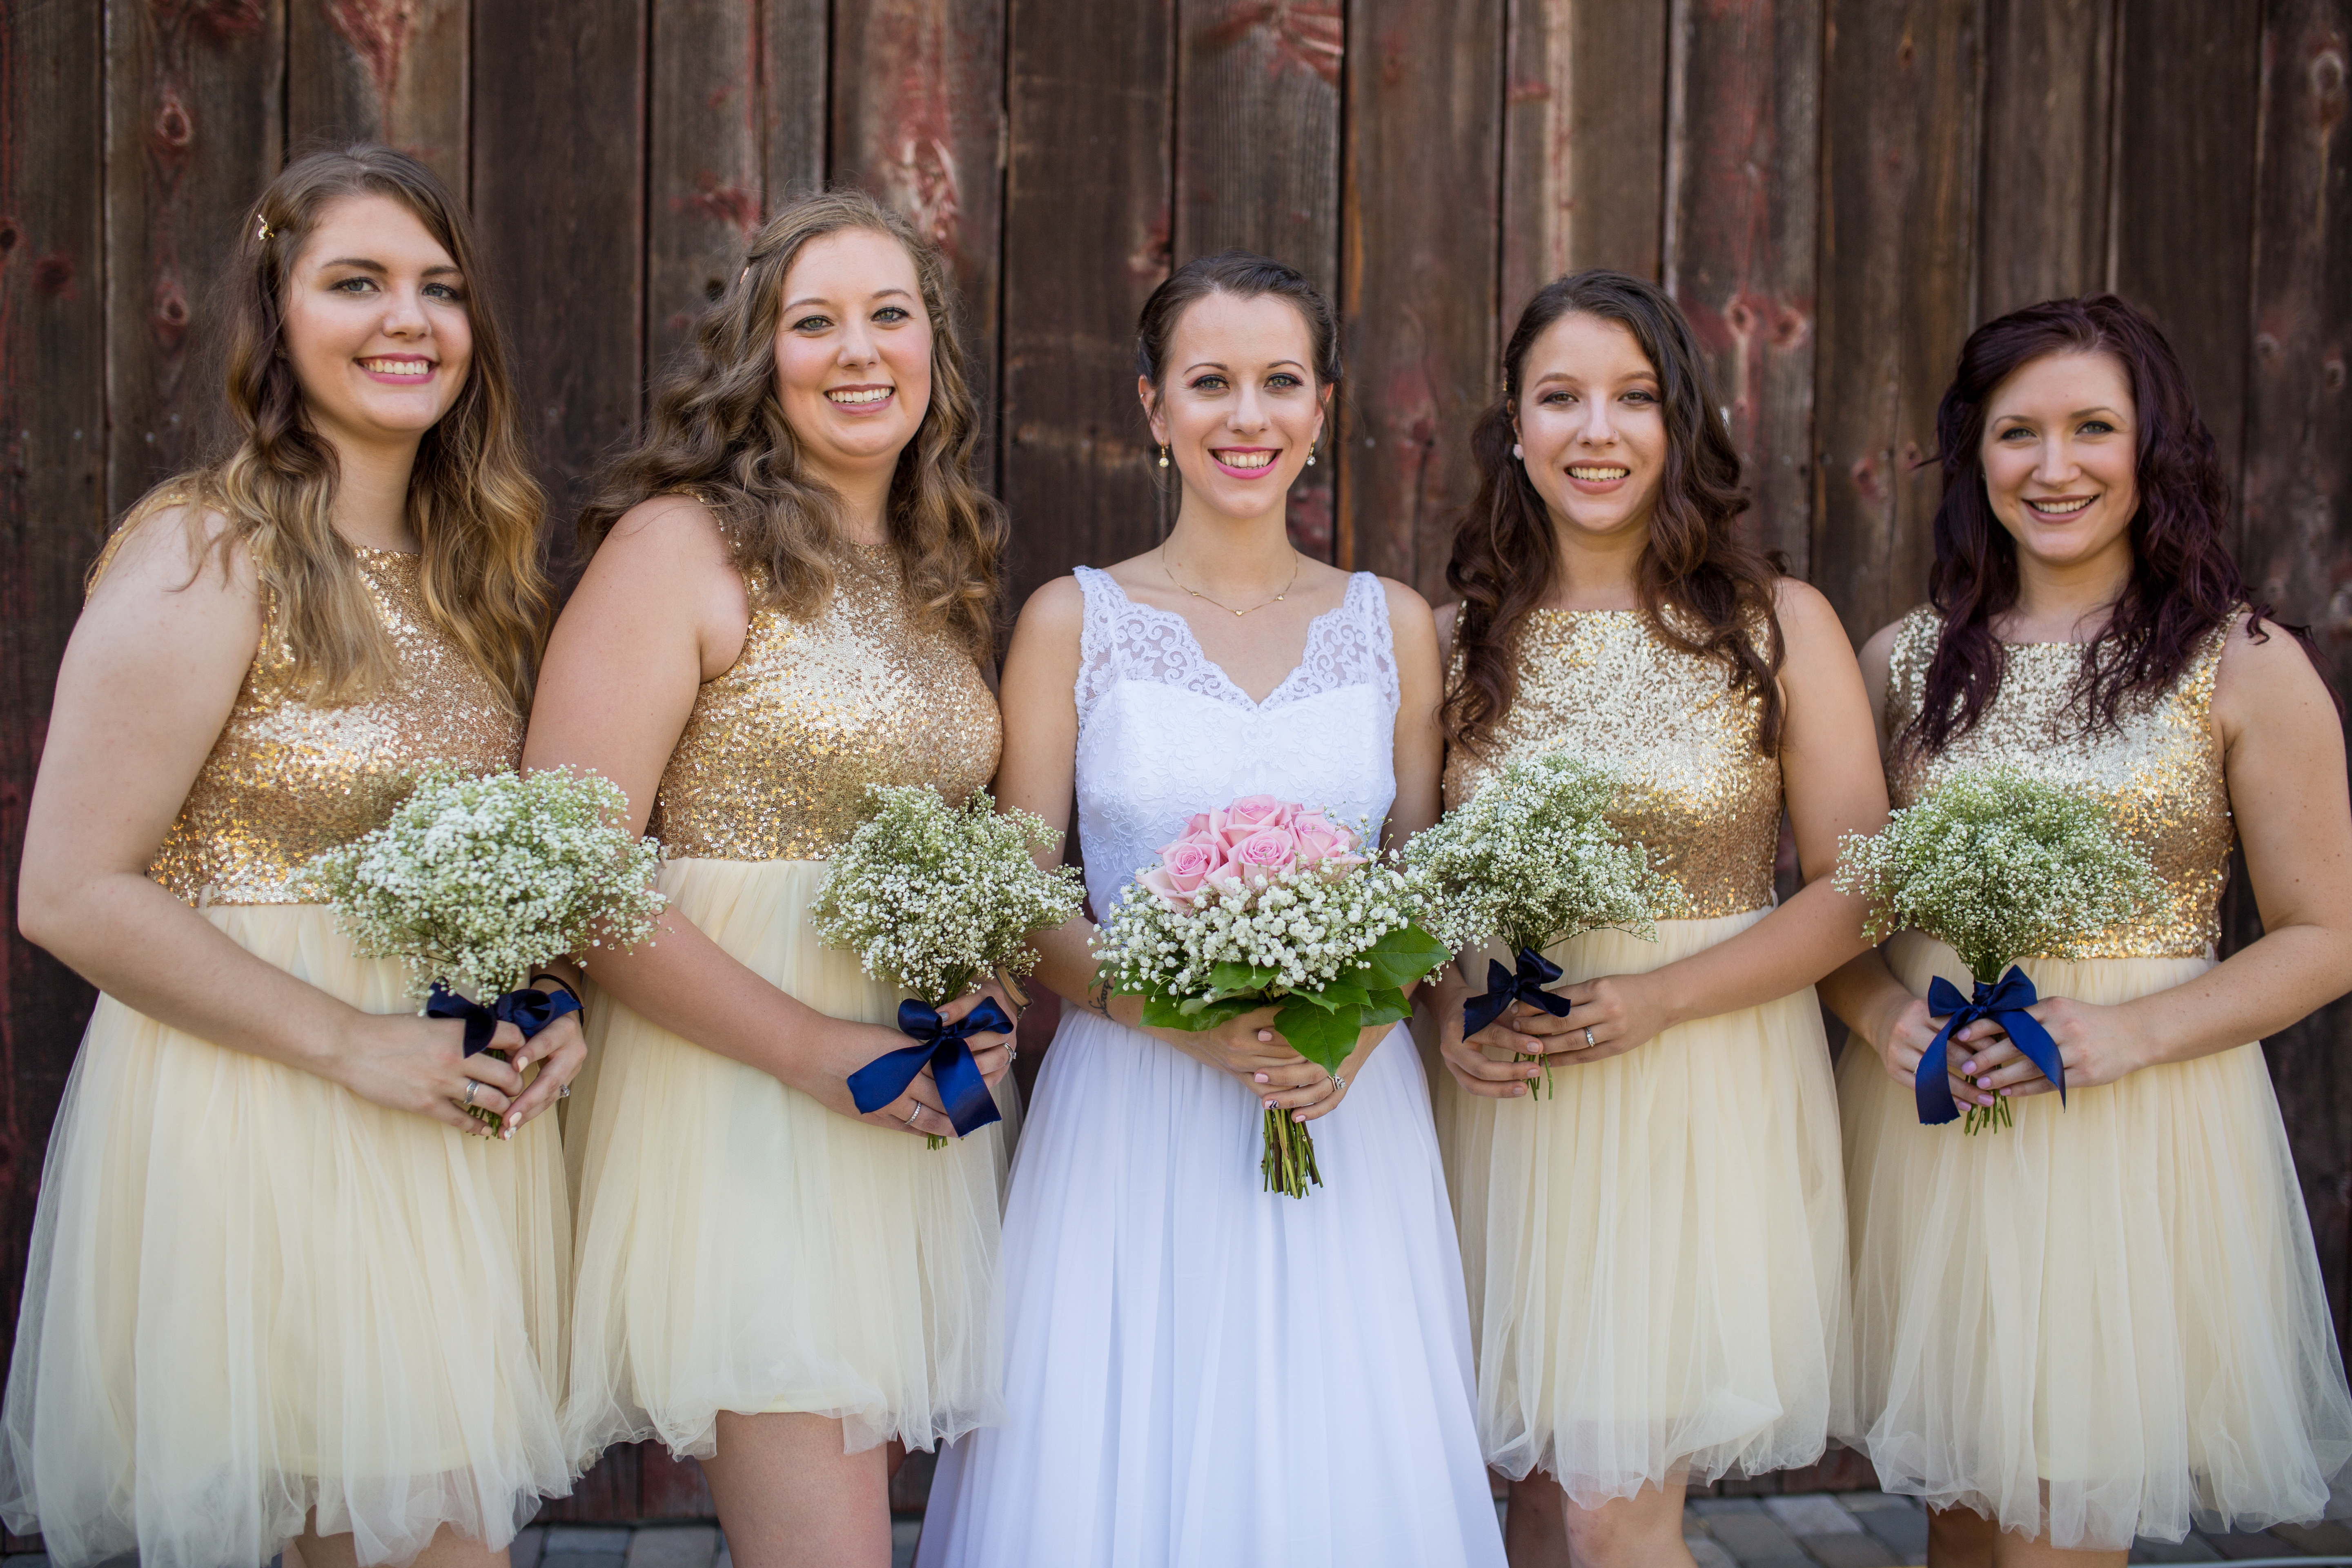 Gold sequin bridesmaids gowns with baby breath bouquets